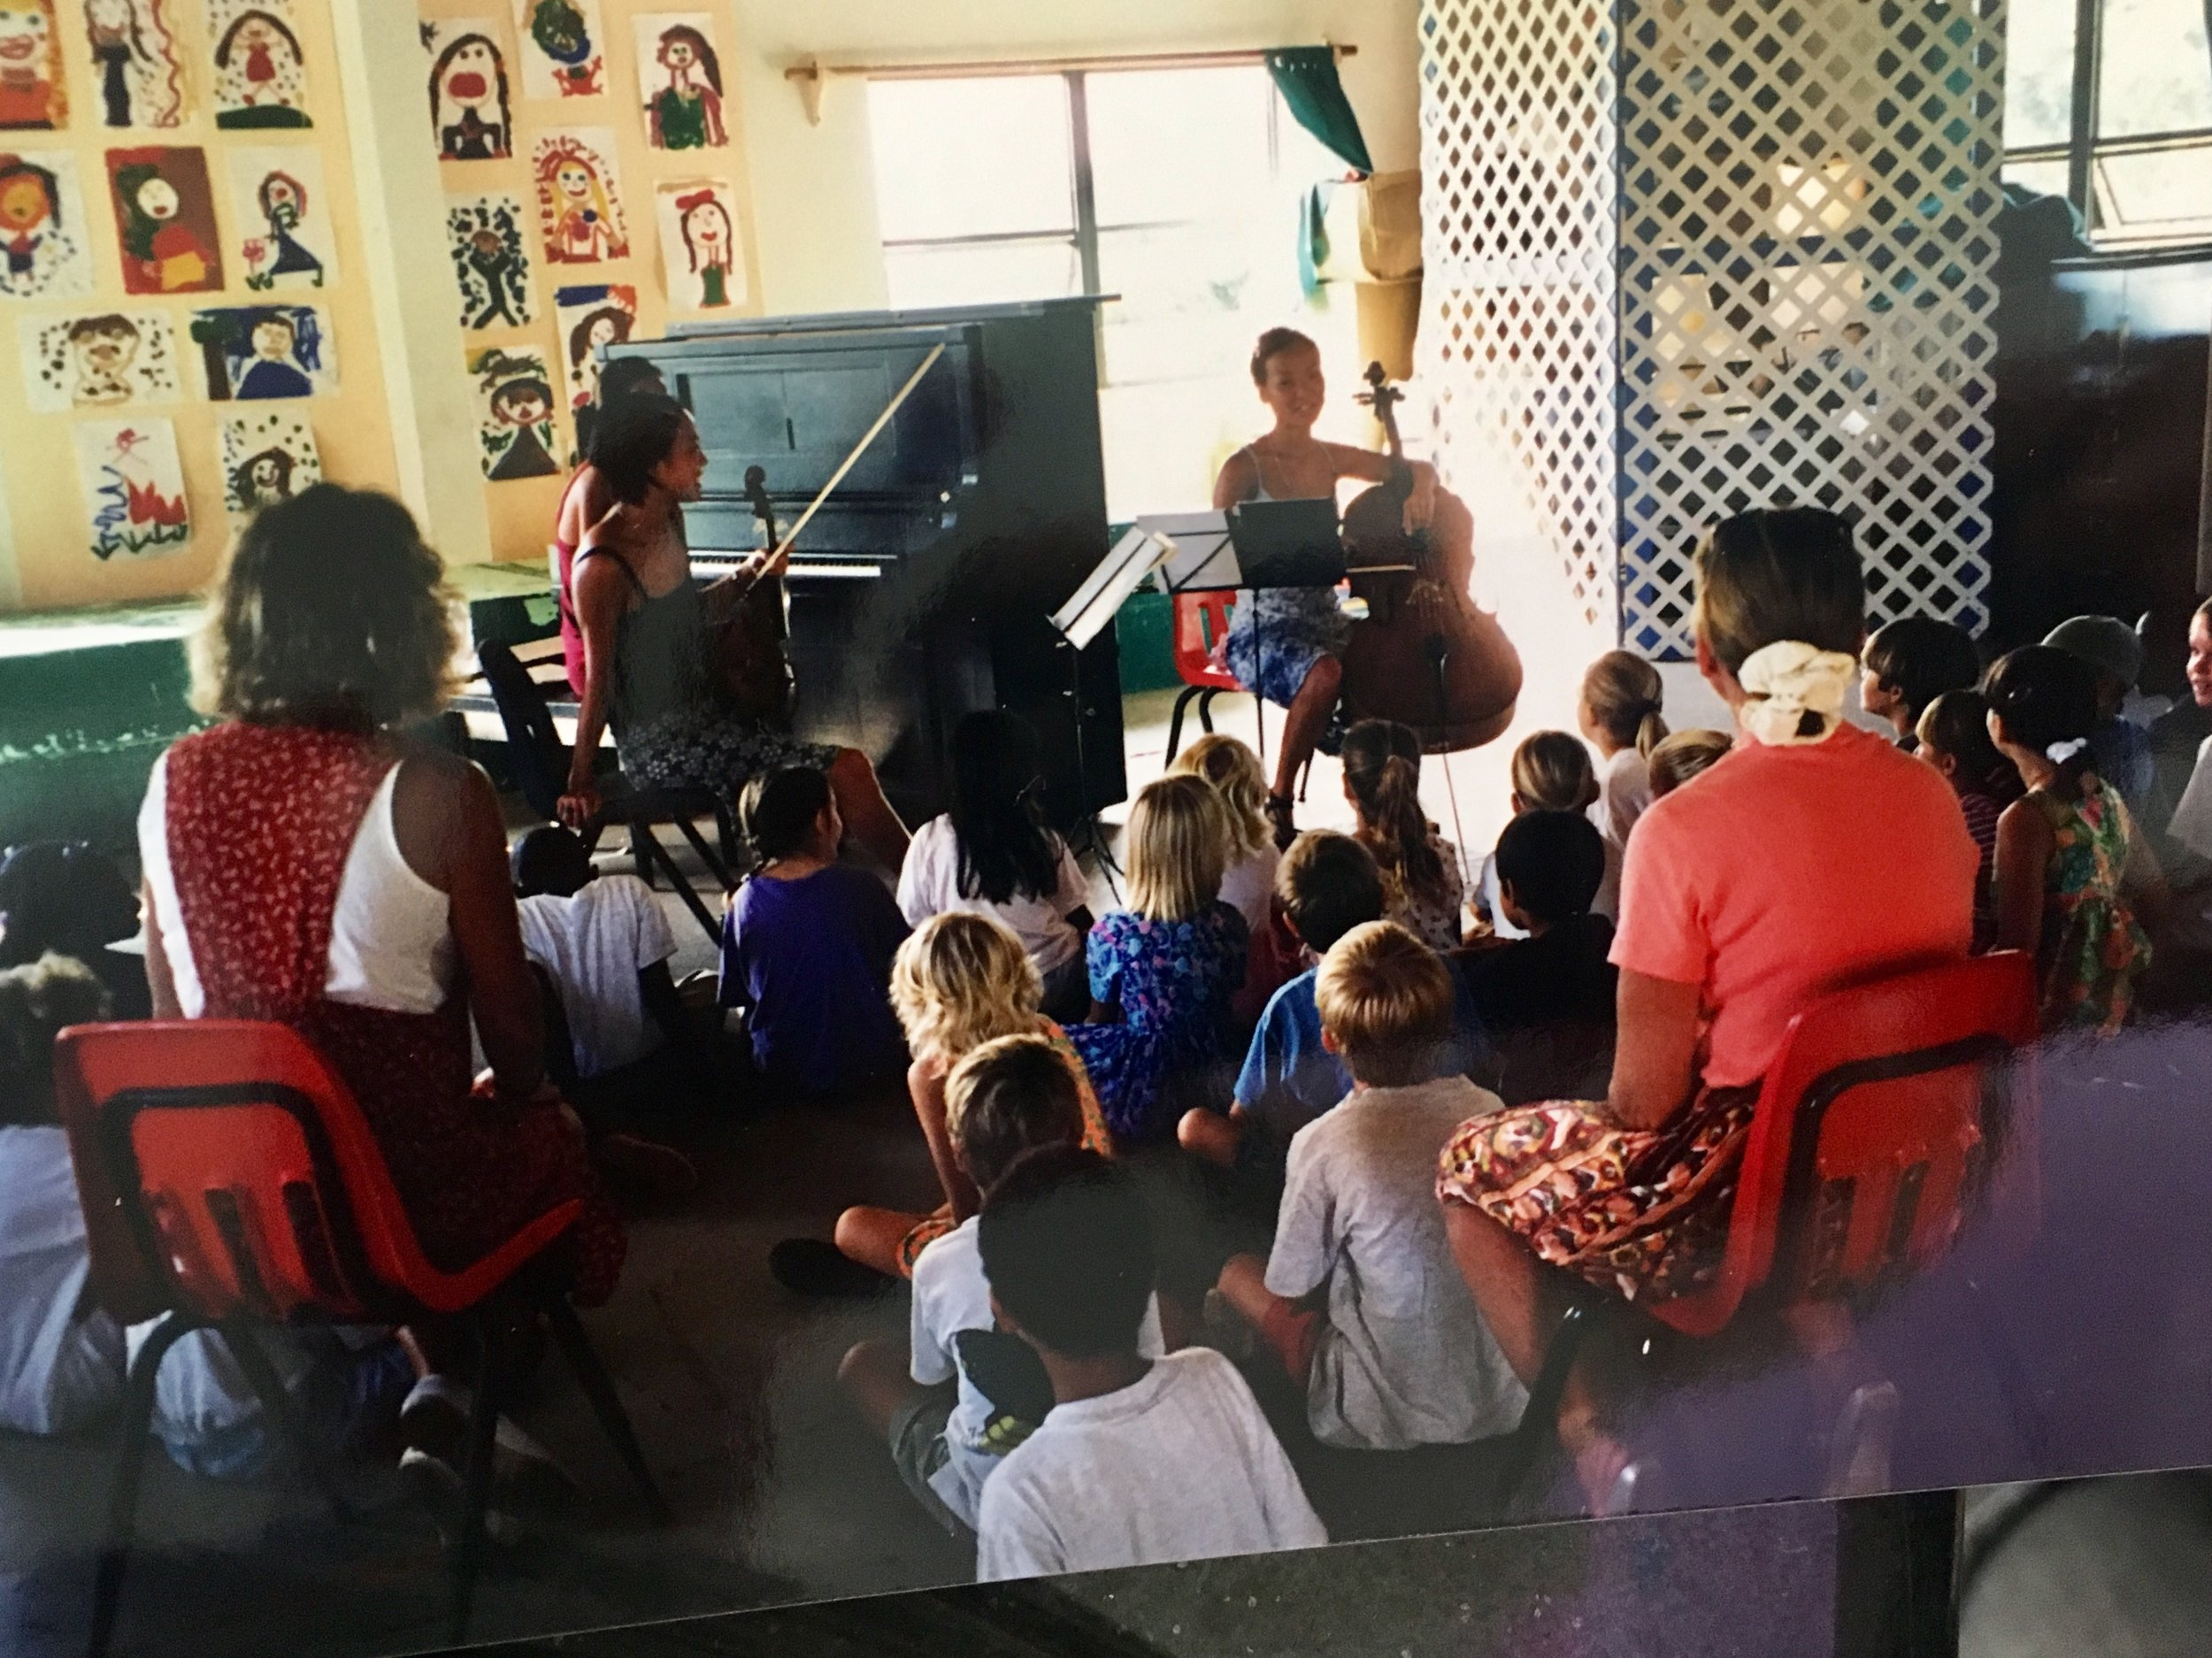 Ahn Trio's one of the first trips to St. John, USVI to perform at the St. John School of the Arts & do music classes for the students of the beautiful island!